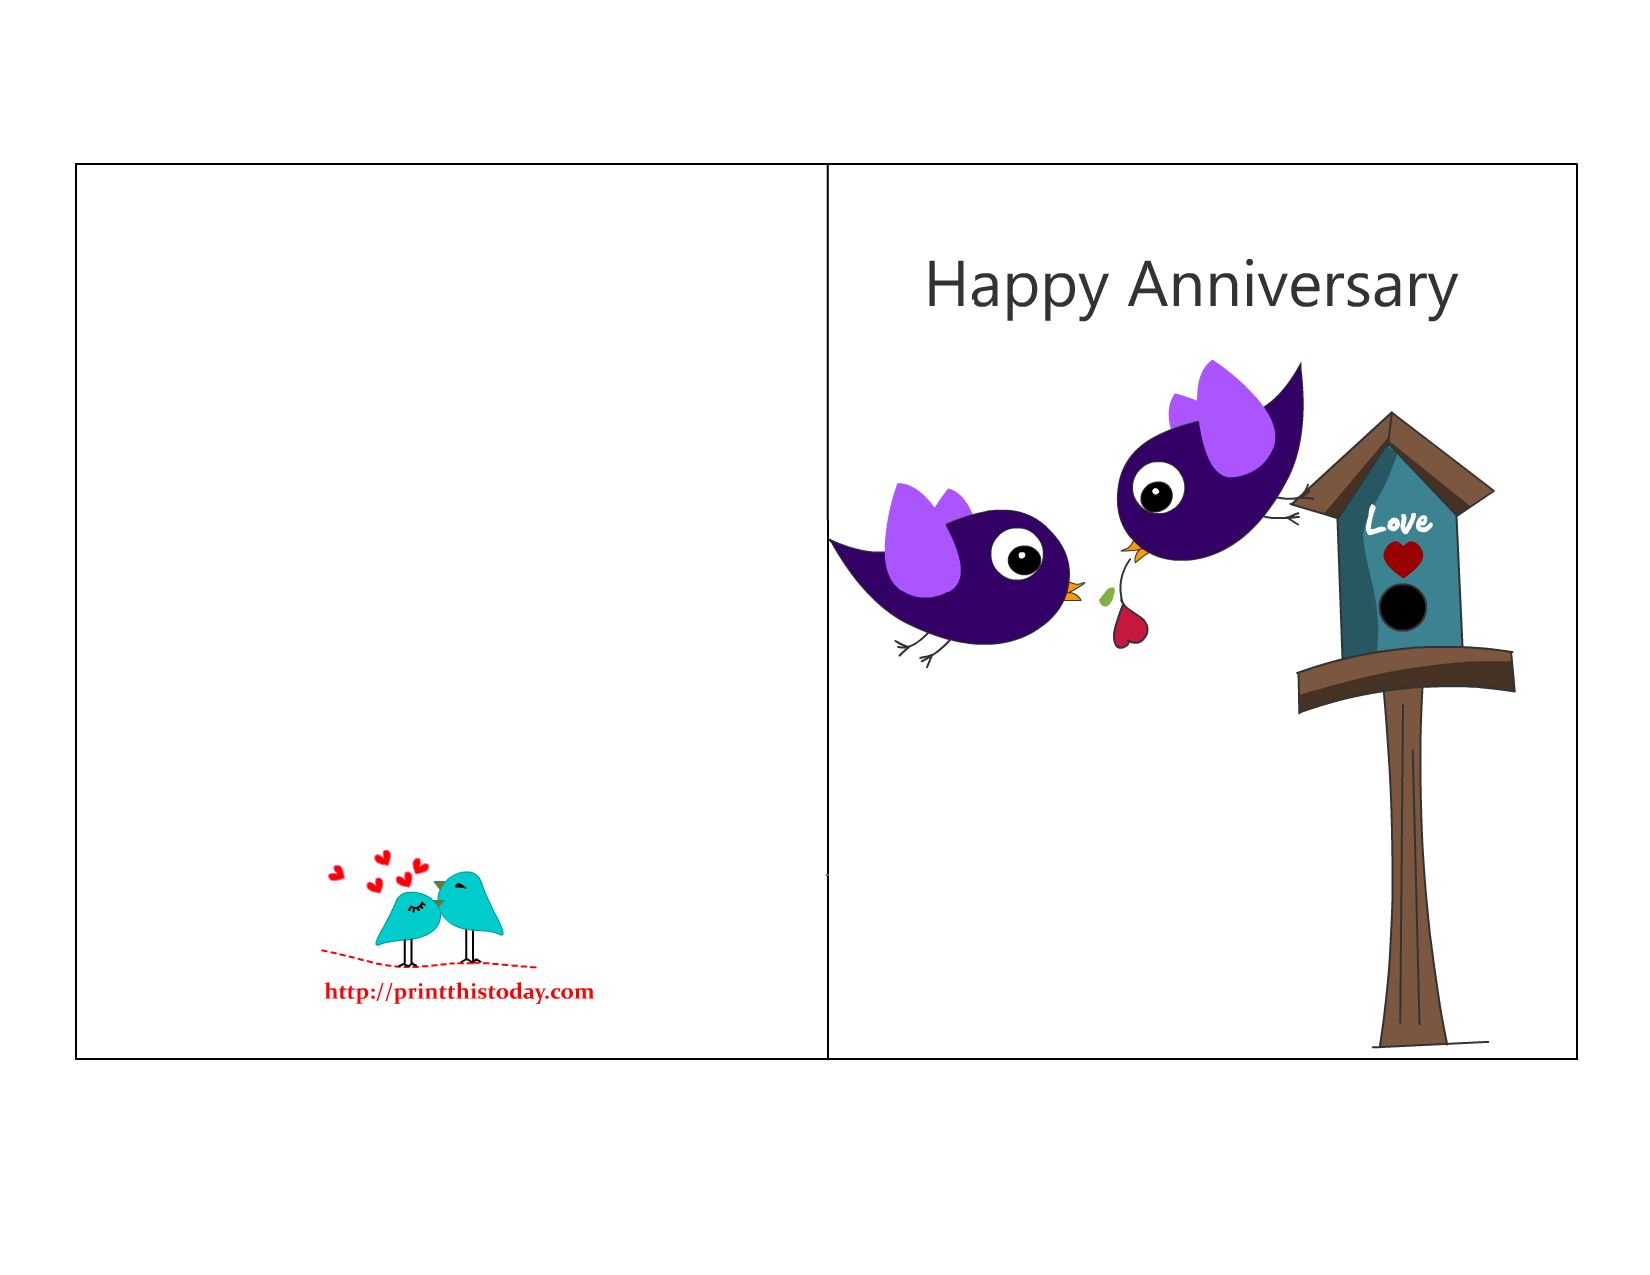 Free printable anniversary card featuring love birds